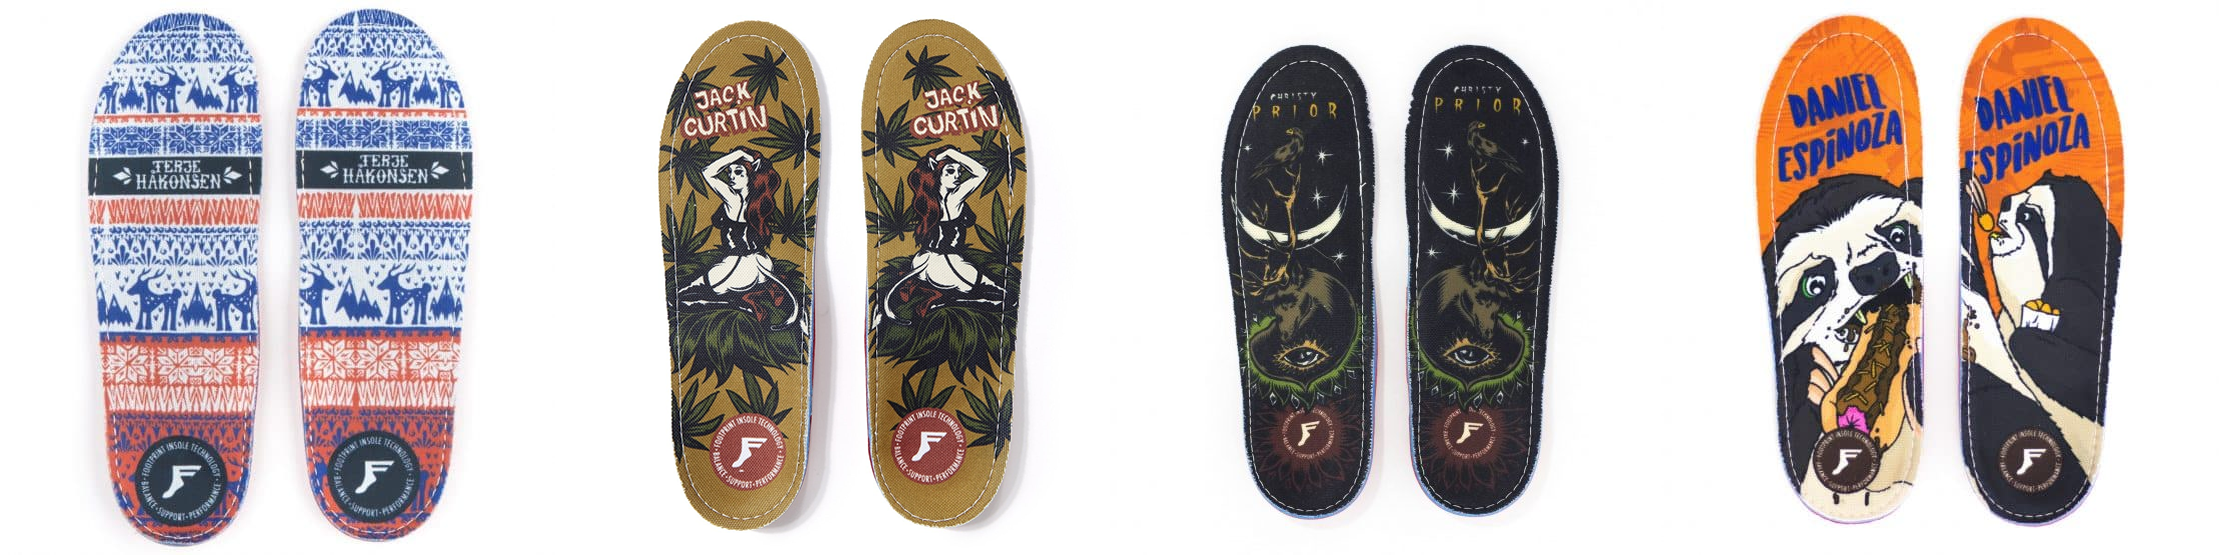 Some of the designs available for the Gamechanger insole from Footprint Insole Technology.